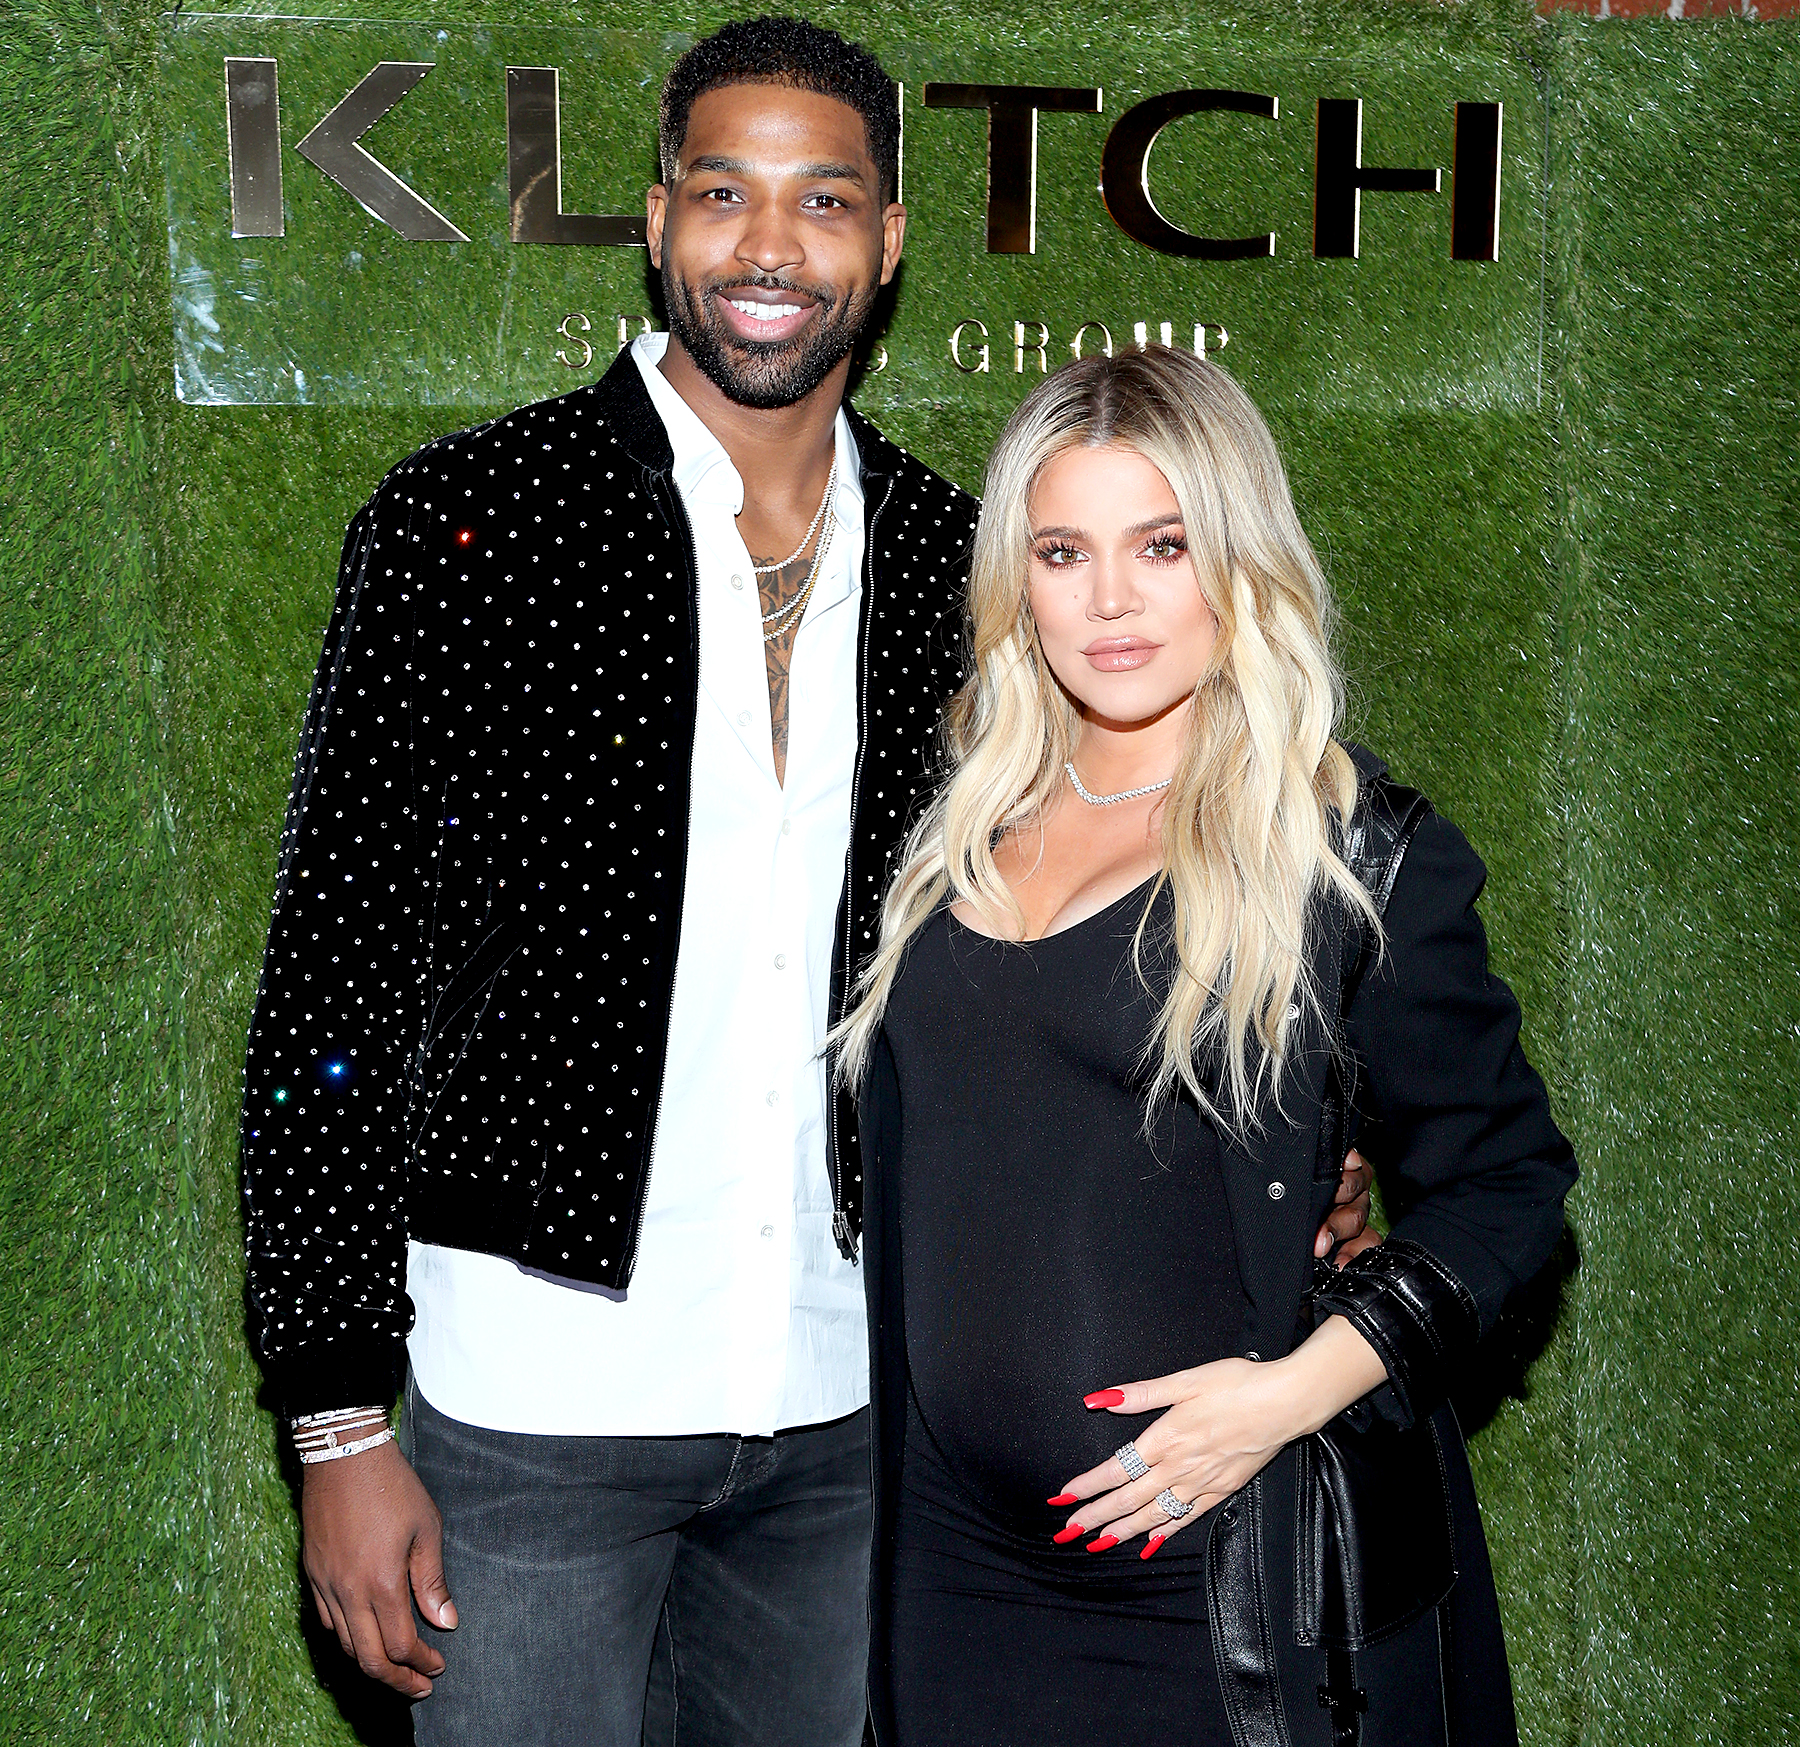 Inside Tristan Thompson's night with curvy Instagram model